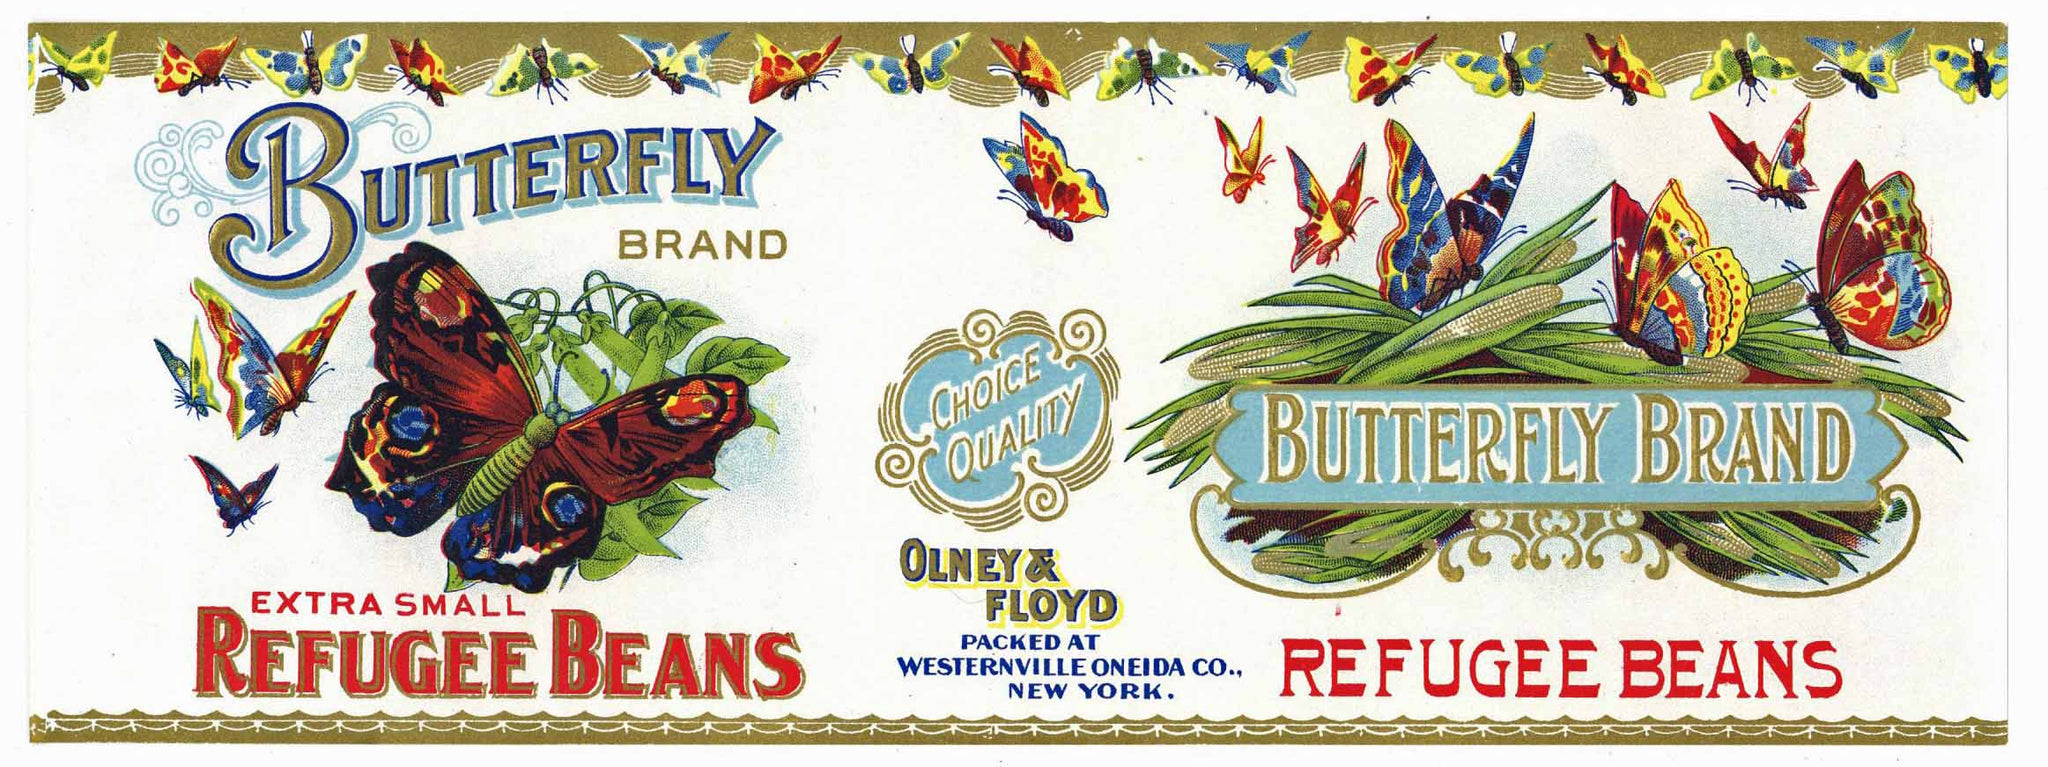 Butterfly Brand Vintage New York Refugee Bean Can Label